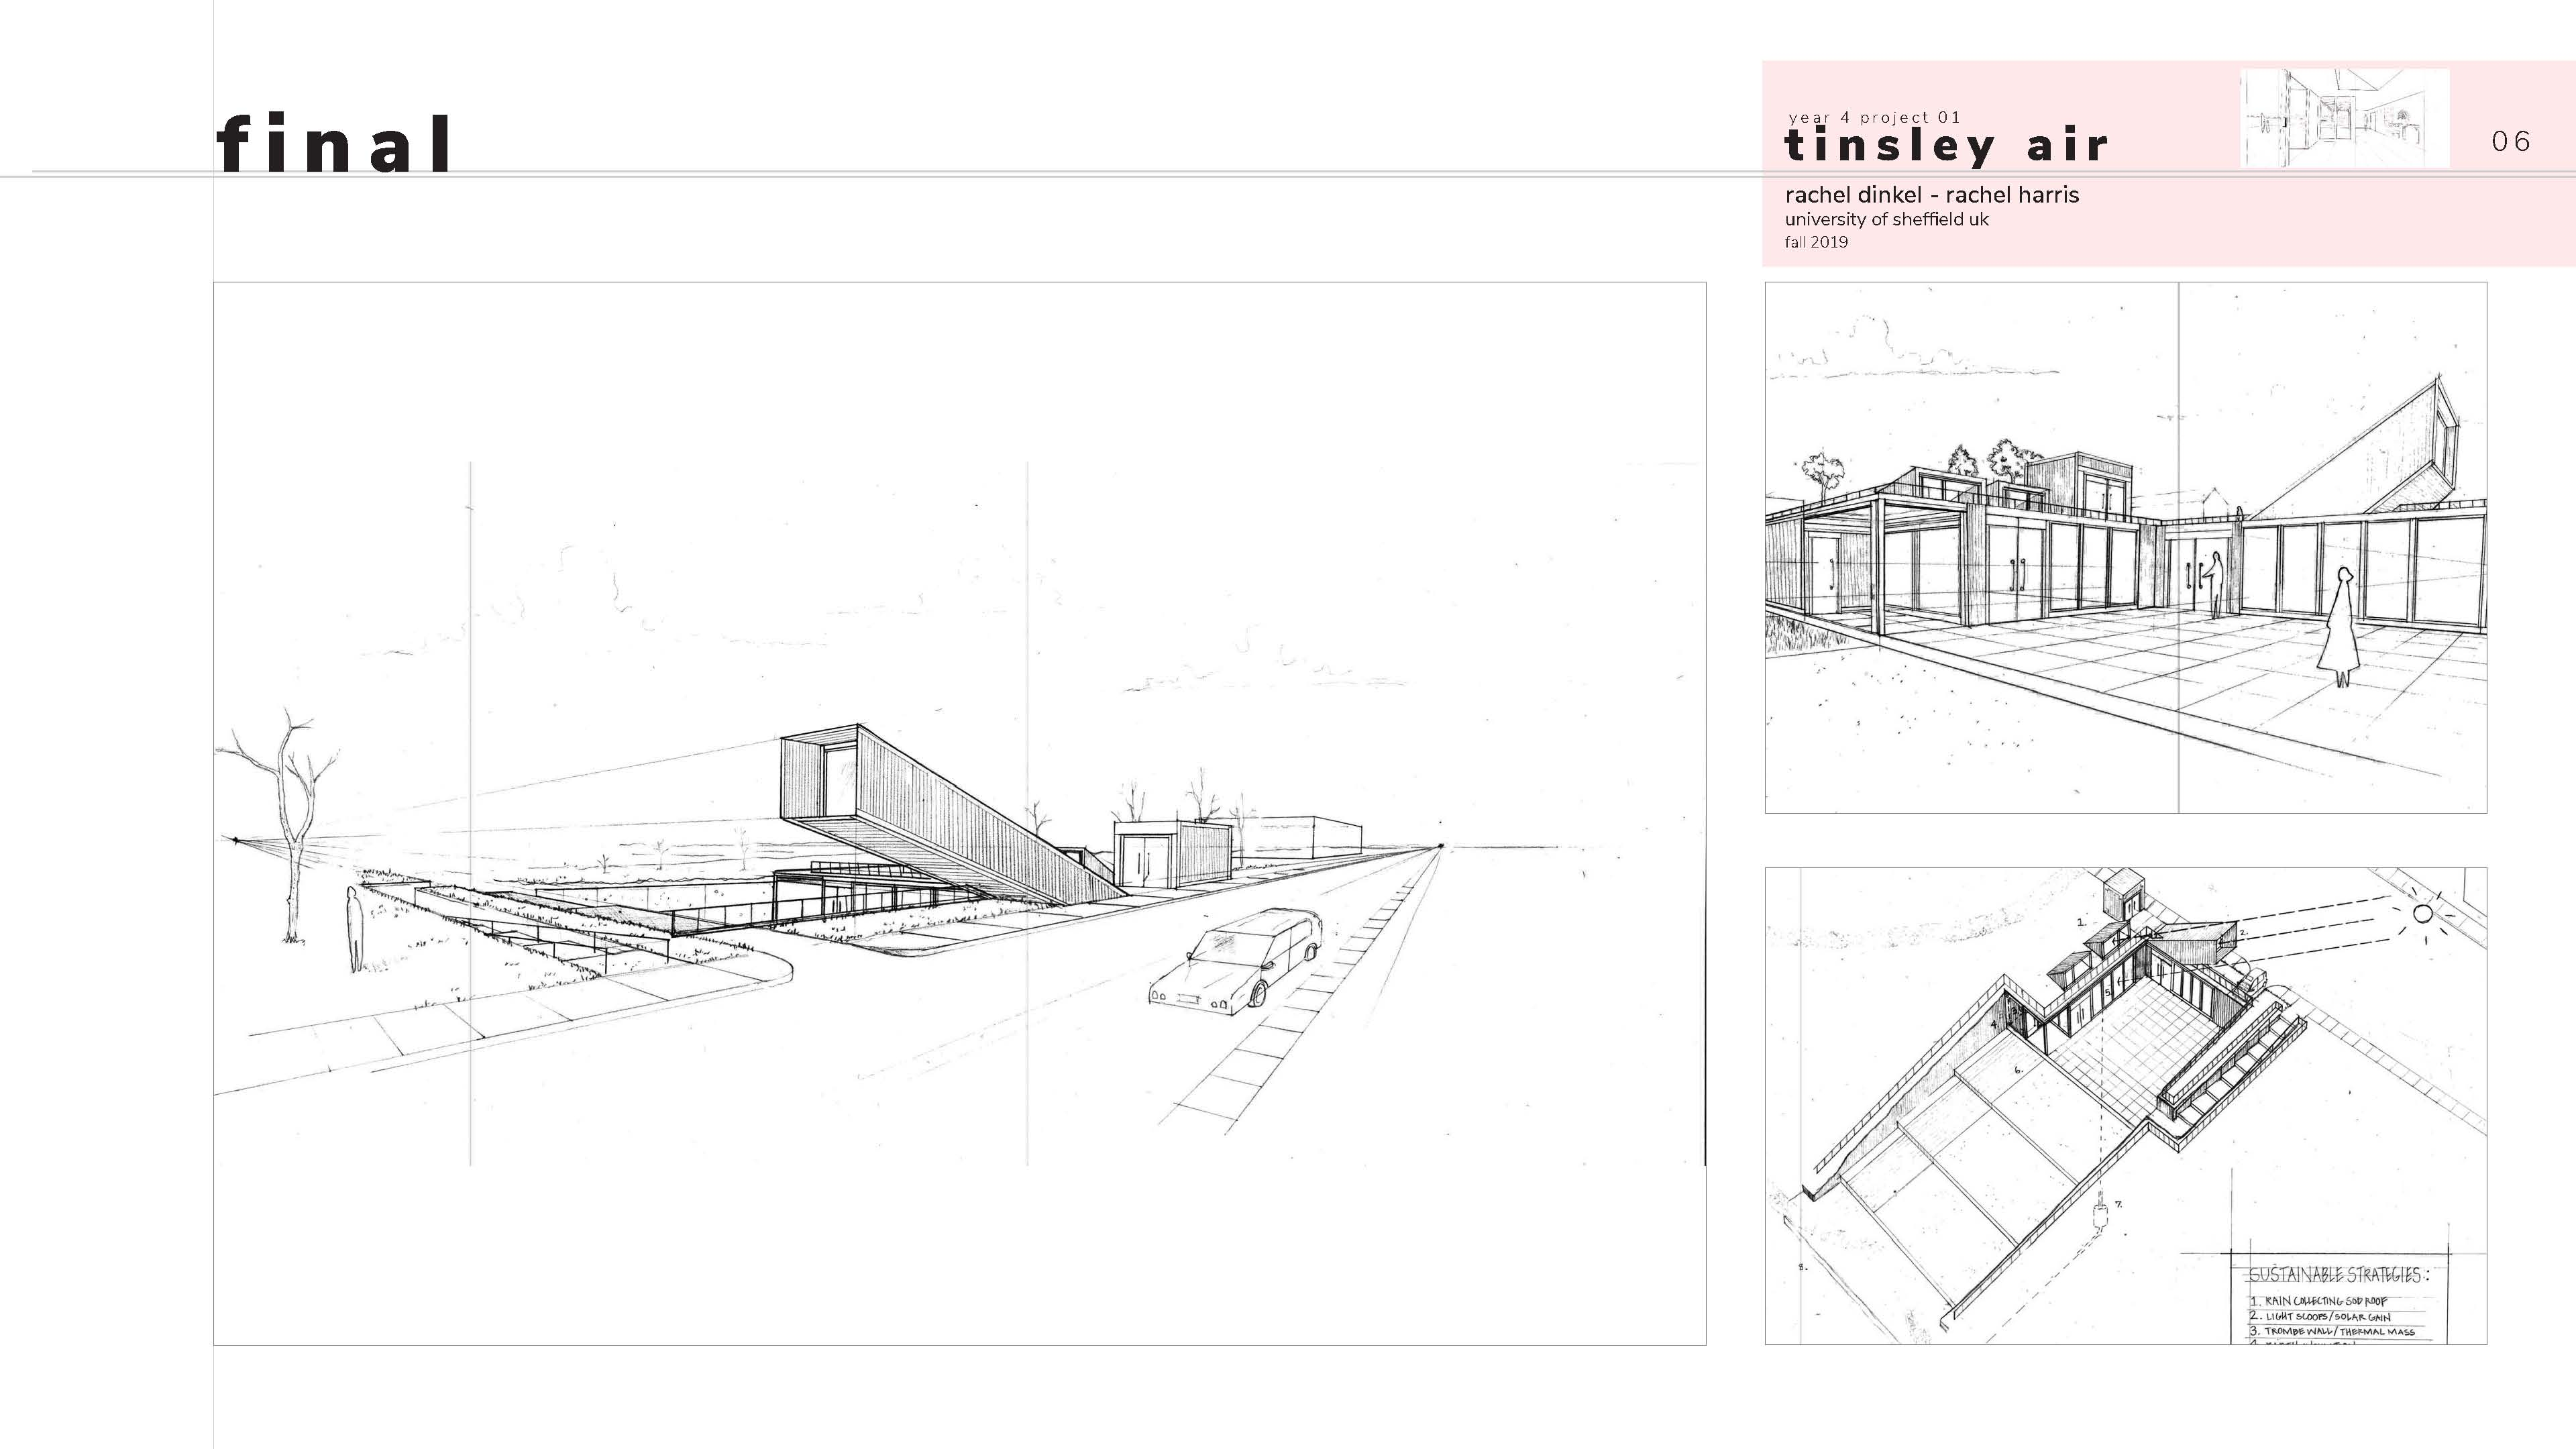 Concept Drawing – Rachel Dinkel and Ethan Page